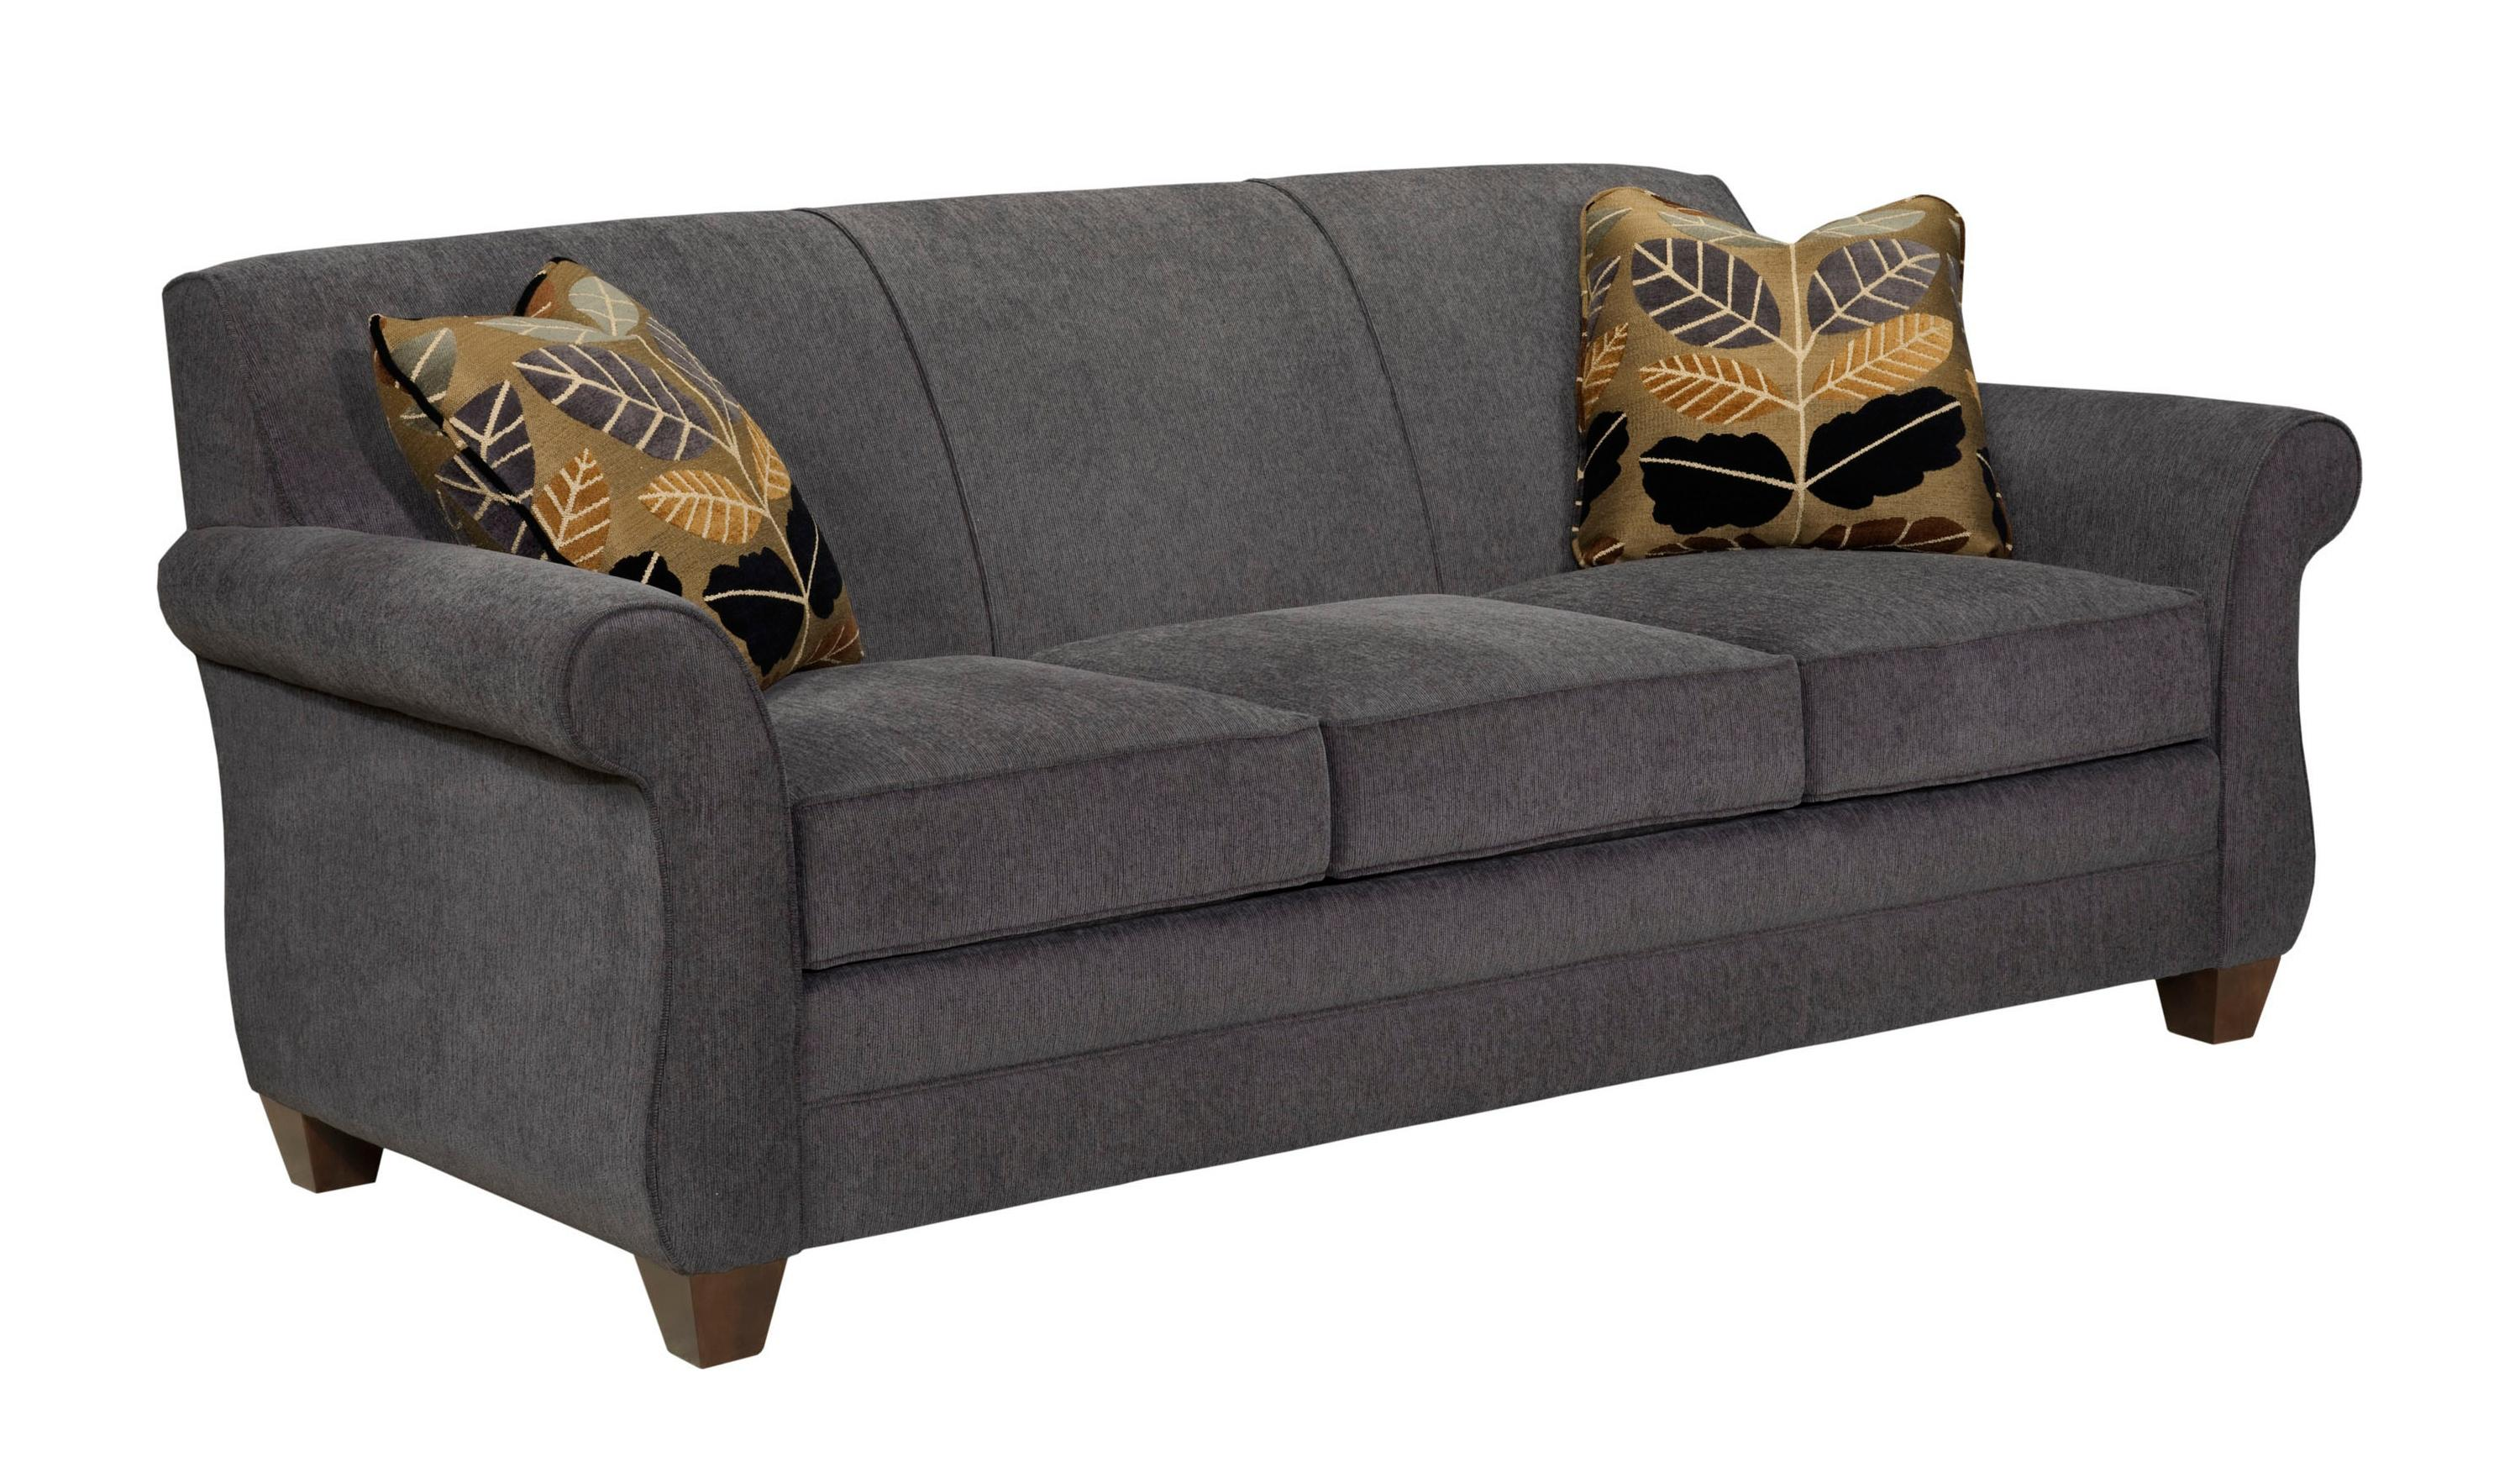 Broyhill Furniture Greenwich Greenwich Sofa - Item Number: 3676-3